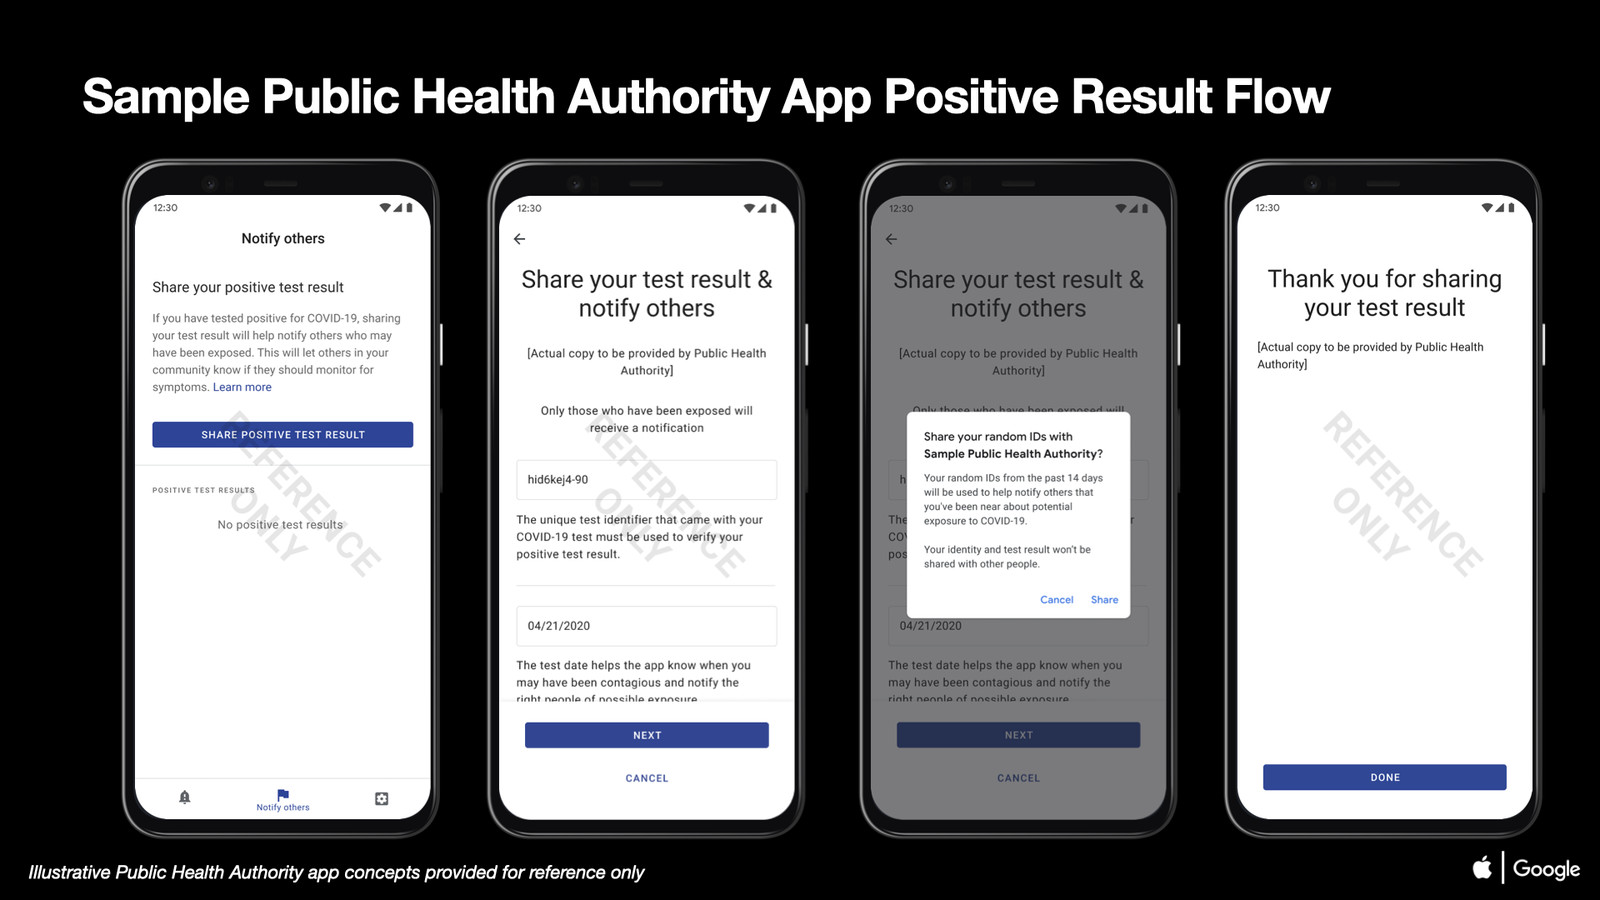 Sample public health authority app onboarding